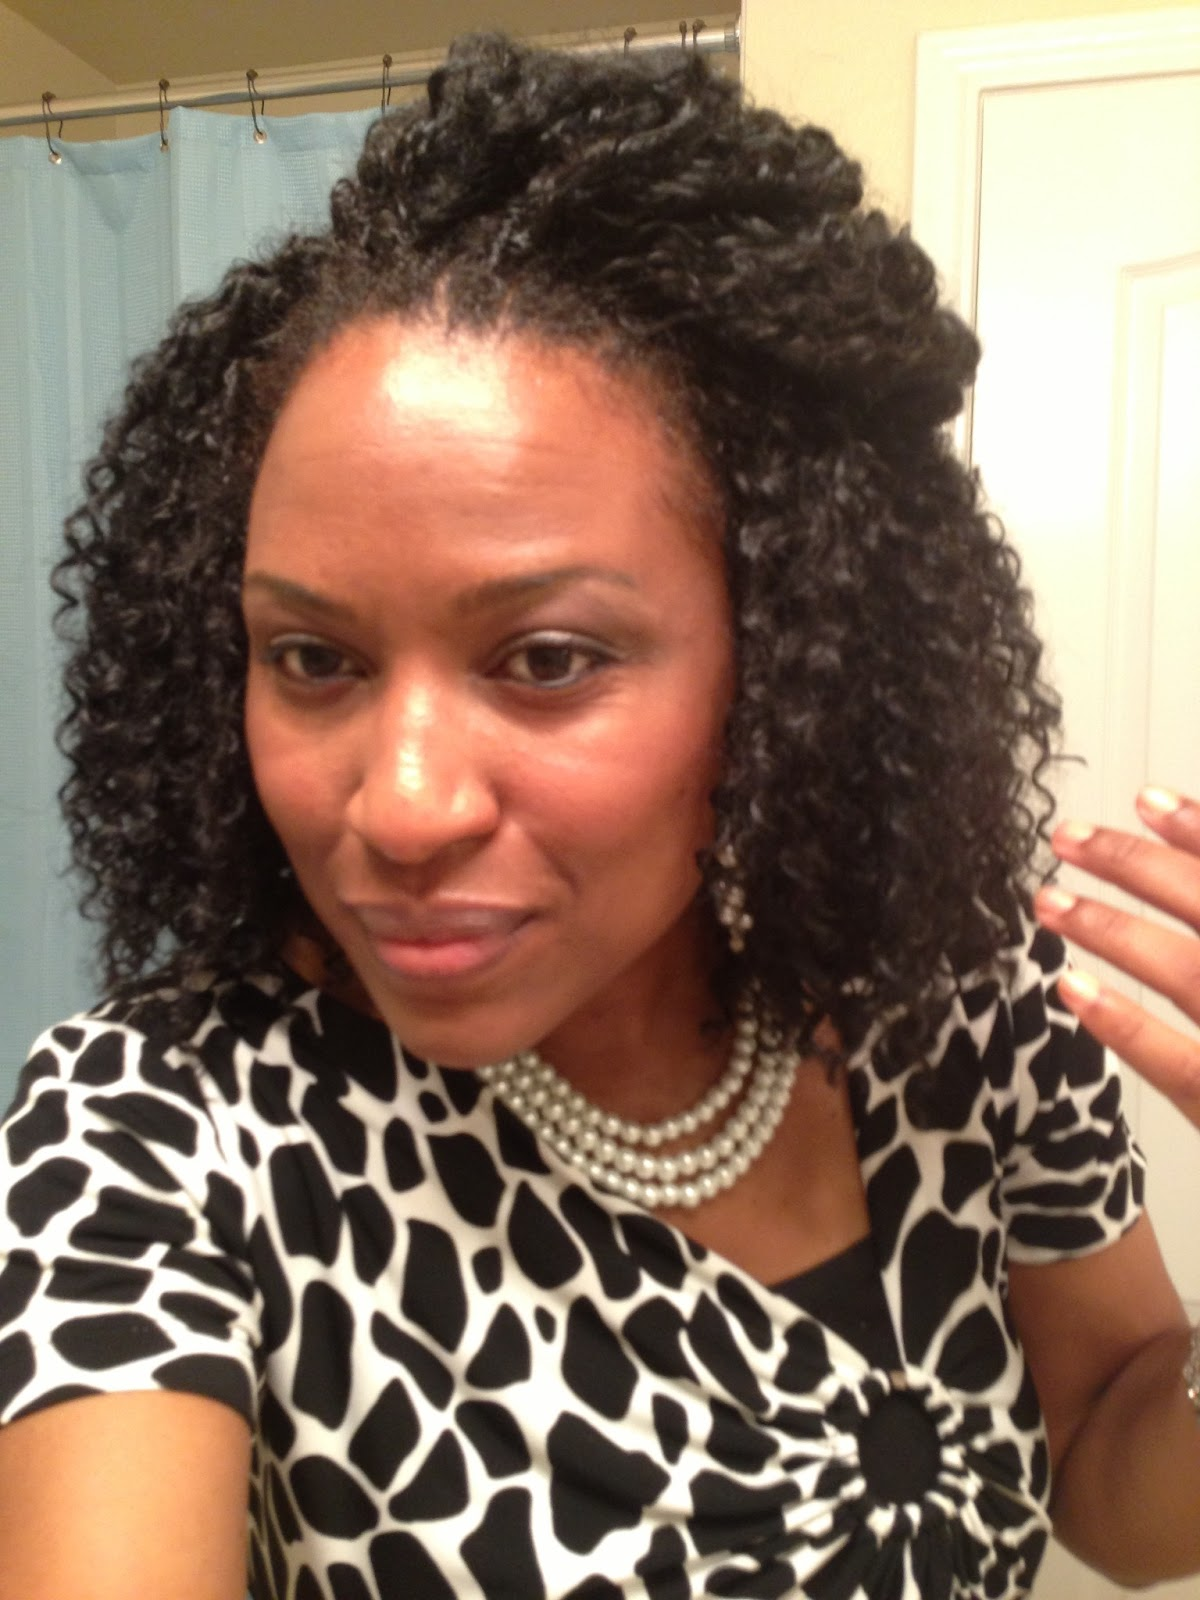 Crochet Braids Dallas : ... HAIR: Get Maximum Wear out of your Crochet Braids:My 8 week Update